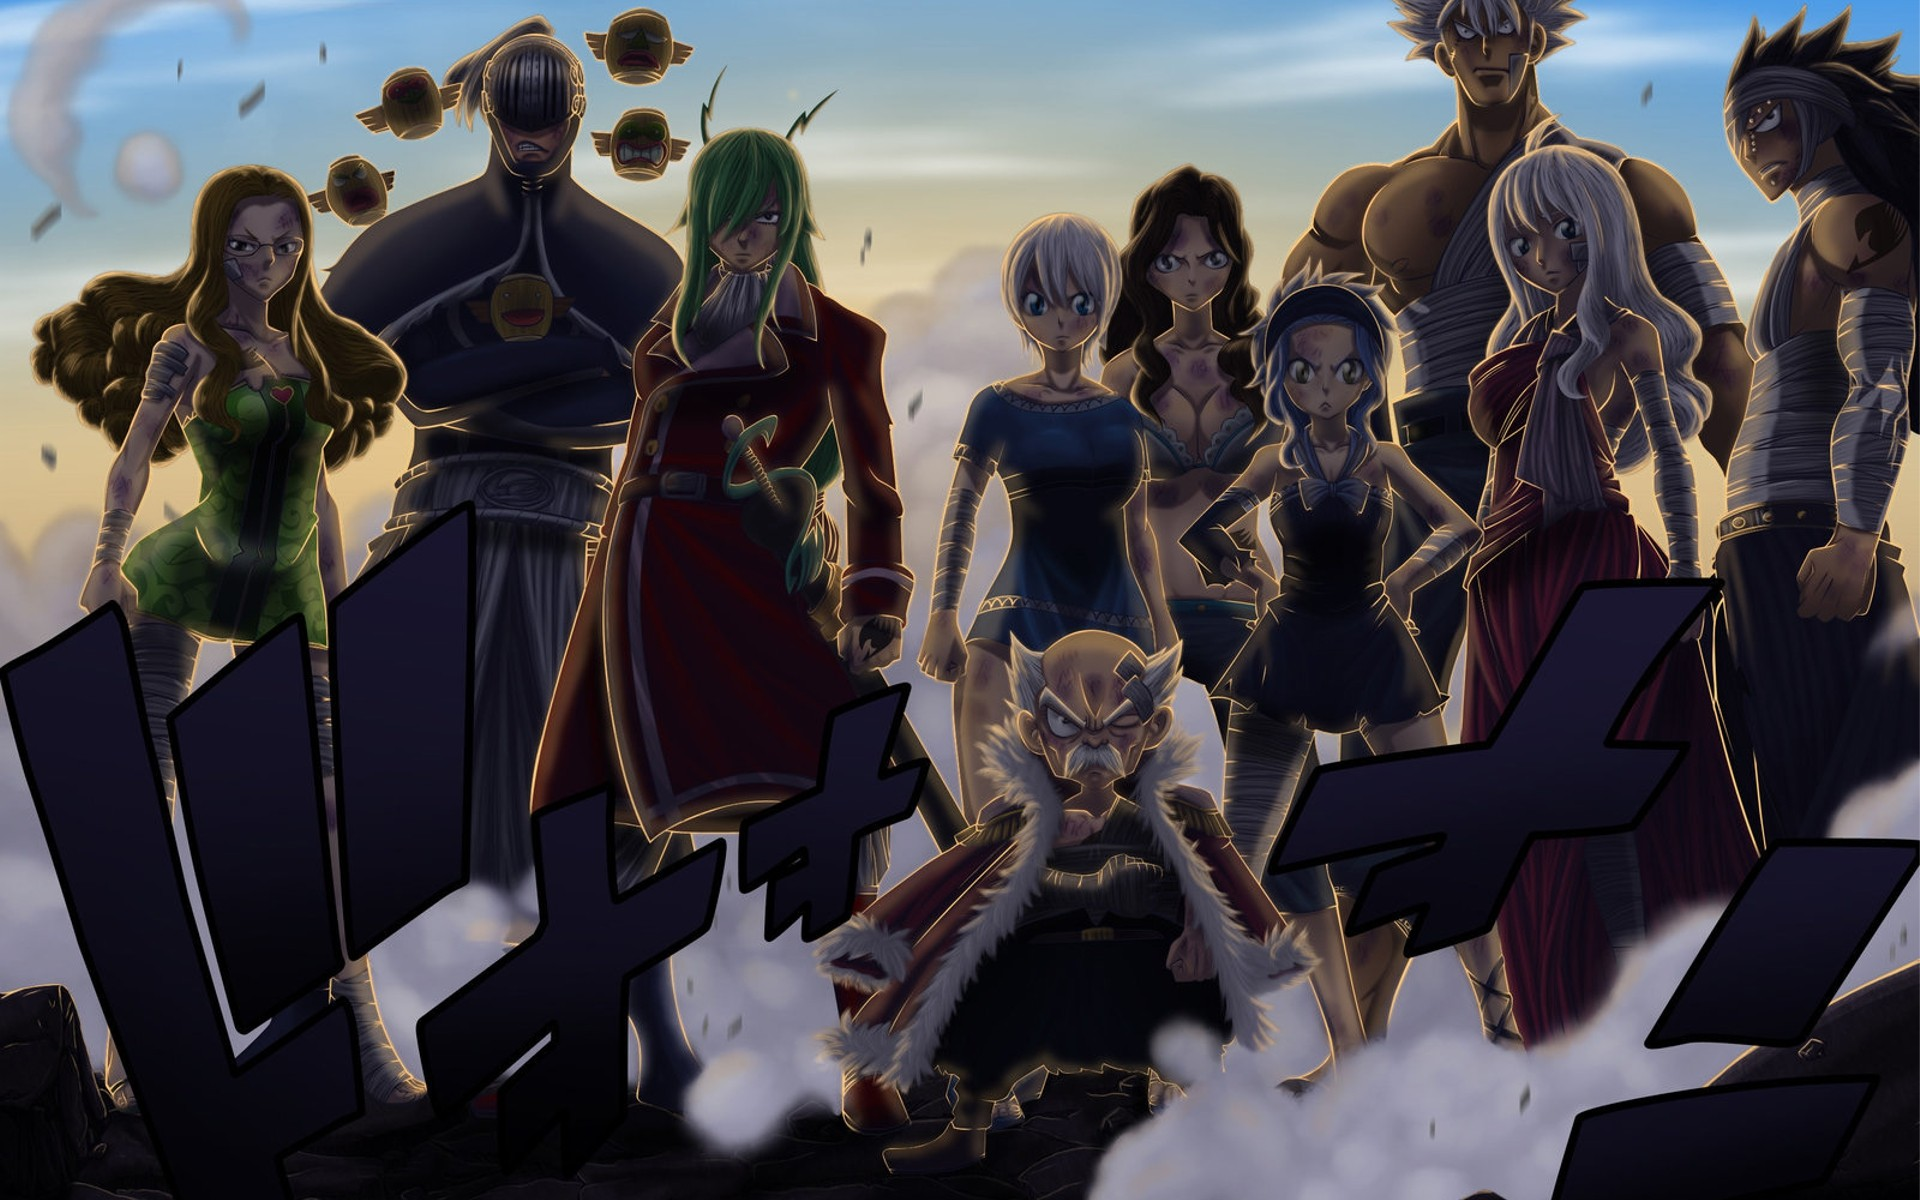 Fairy Tail Guild Wallpaper Hd Fairy tail wallpaper |...